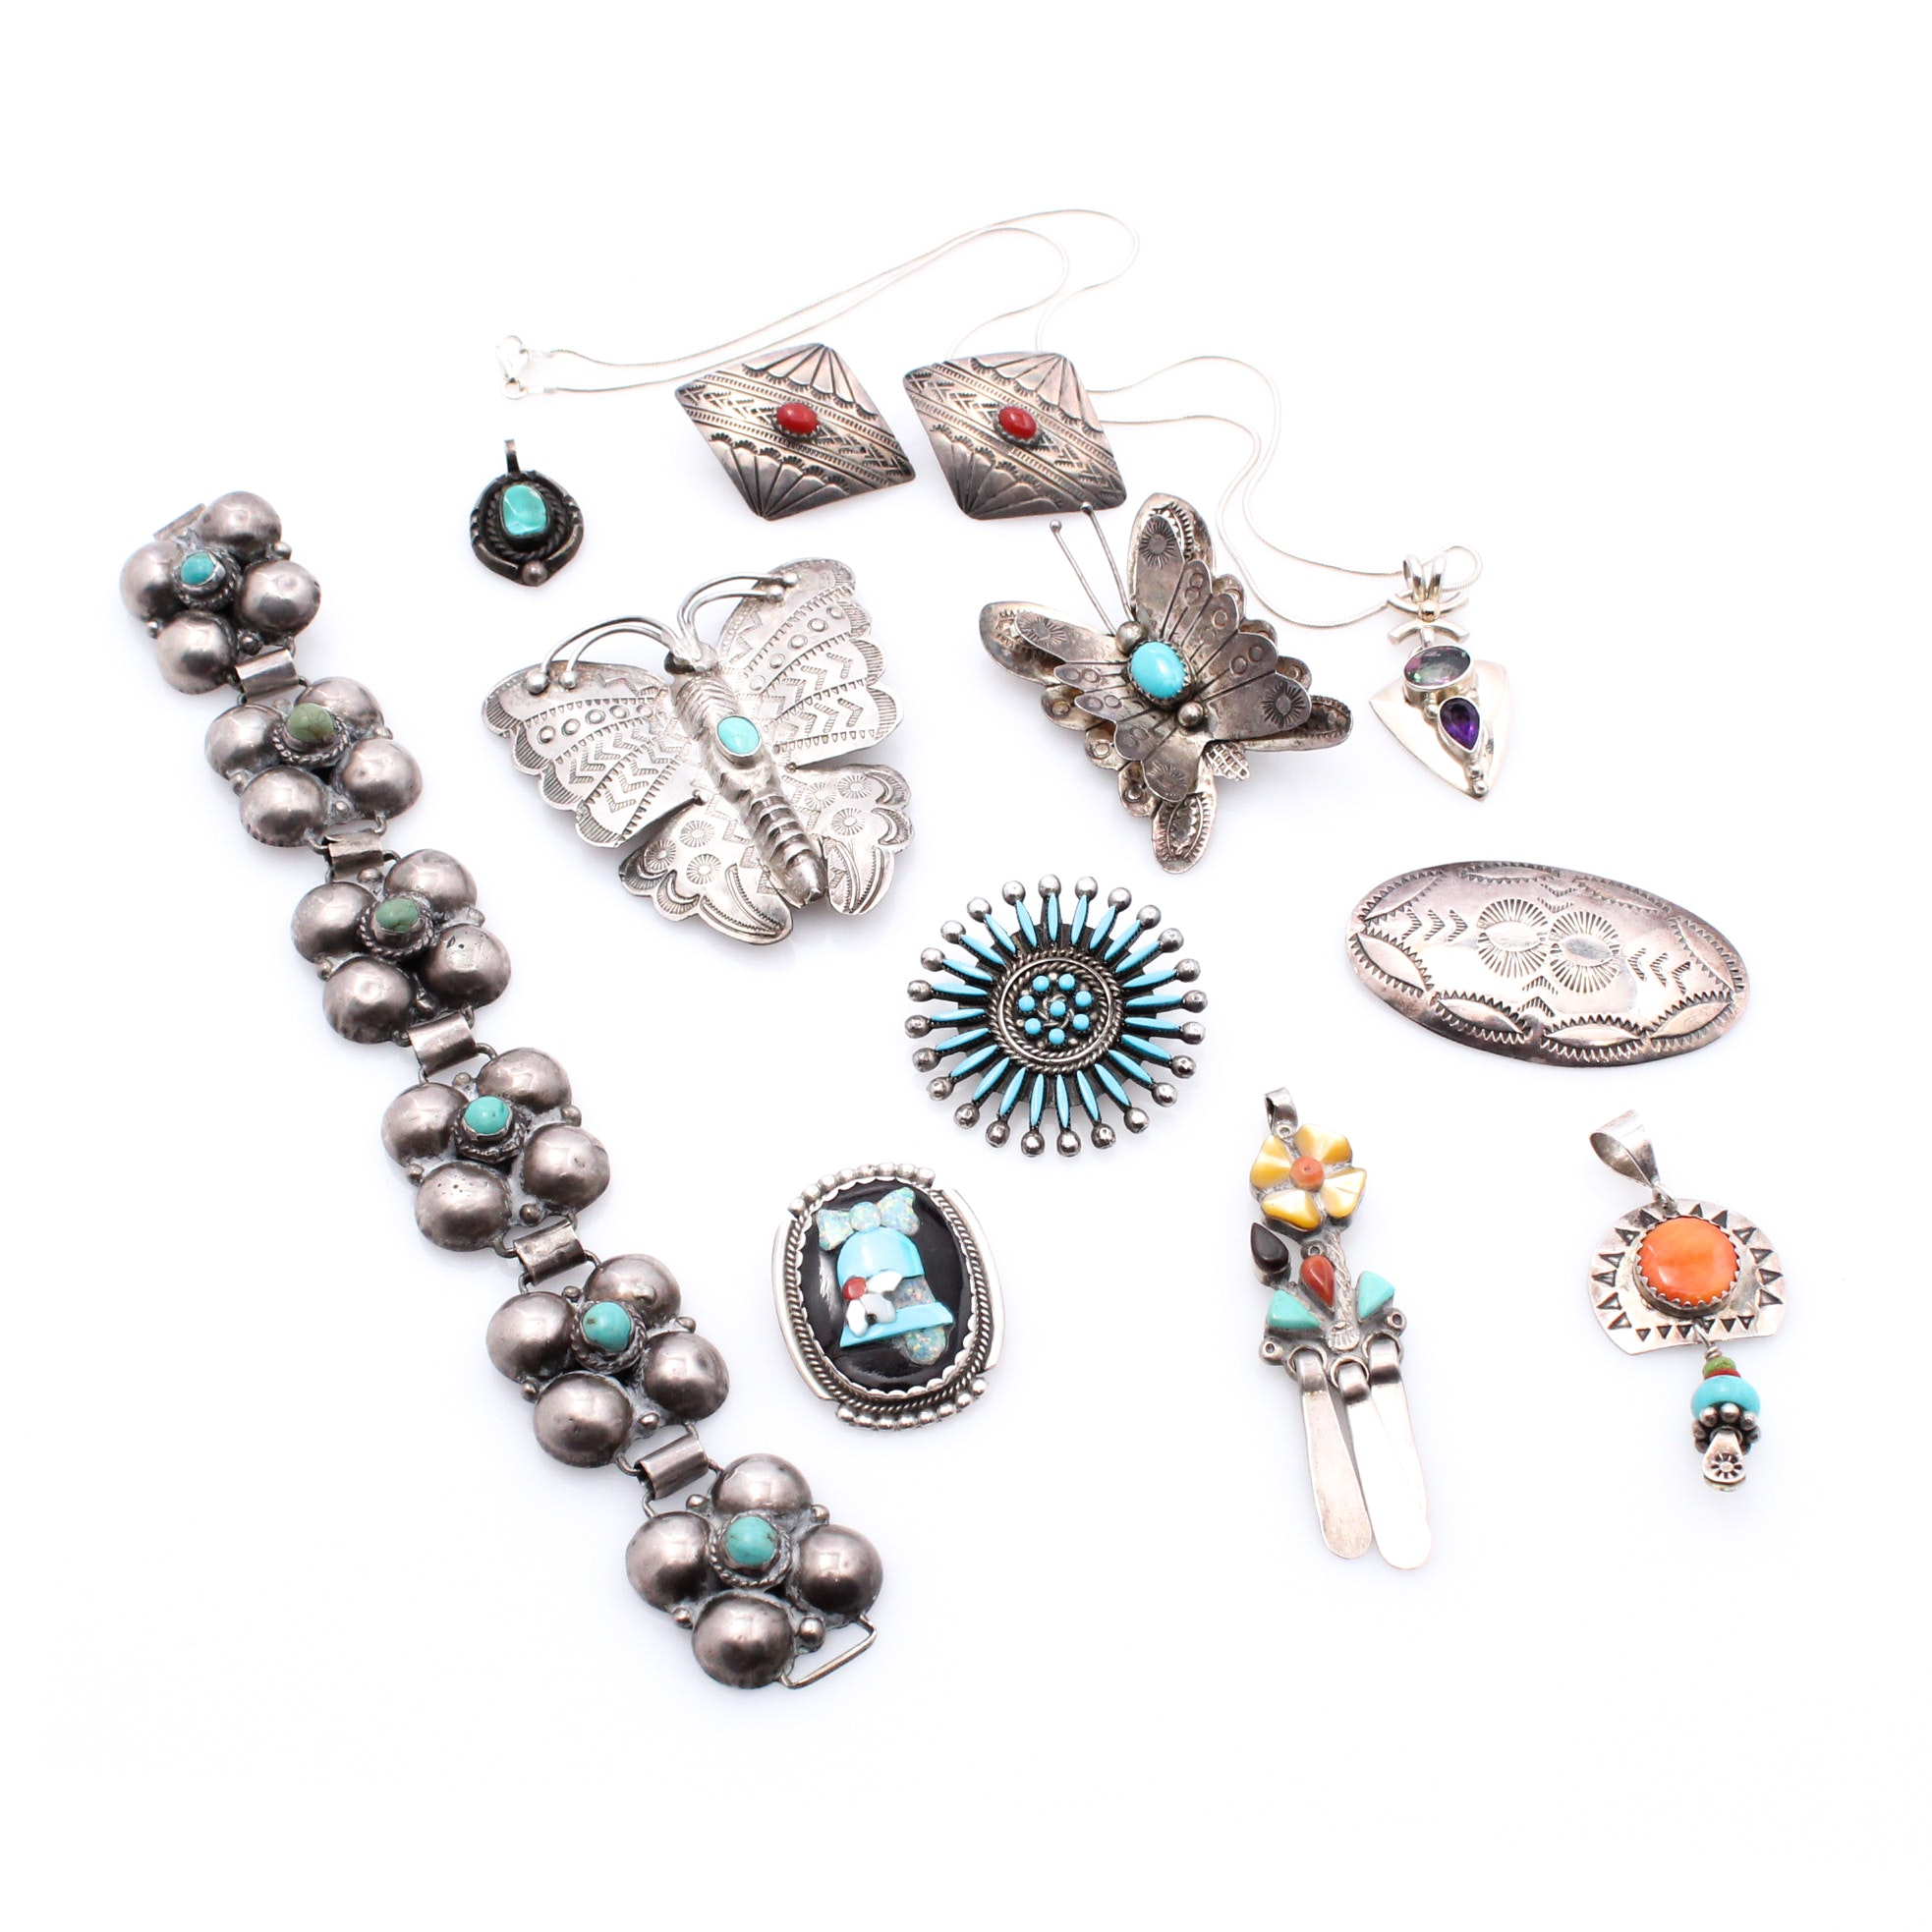 Southwestern Style Sterling Silver Jewelry with Turquoise and Coral